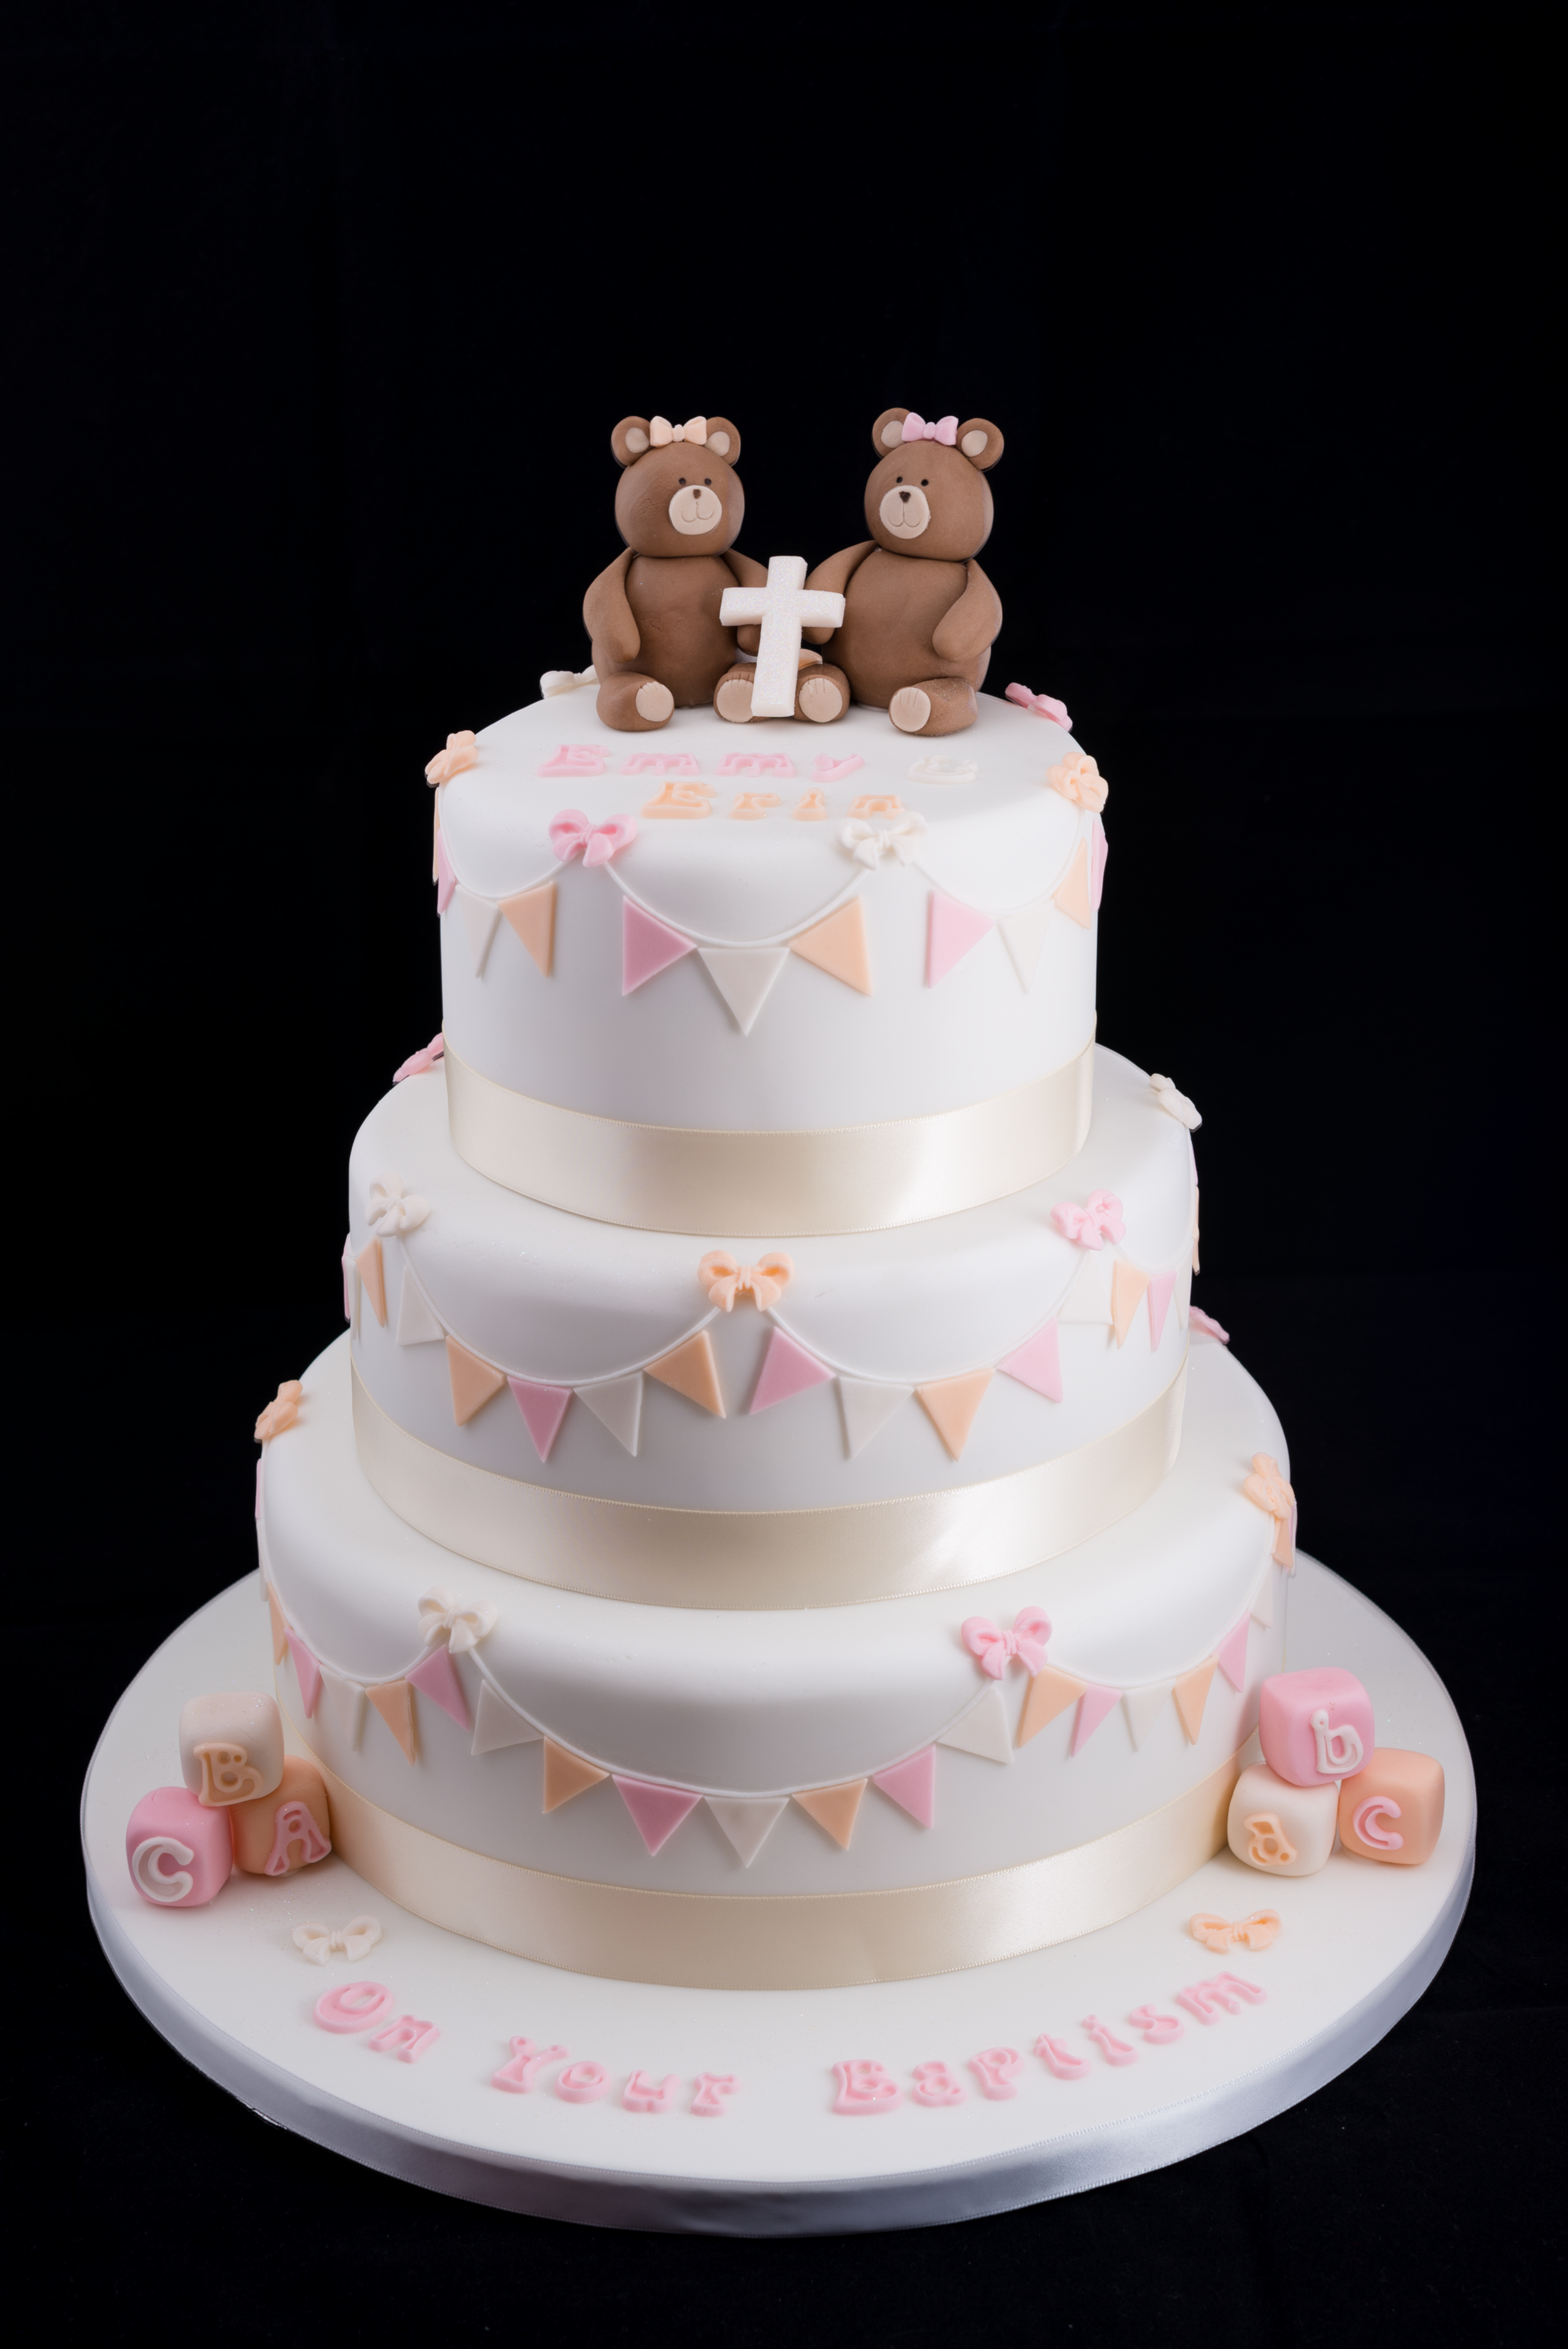 Three tiers and two bears to celebrate your baptism